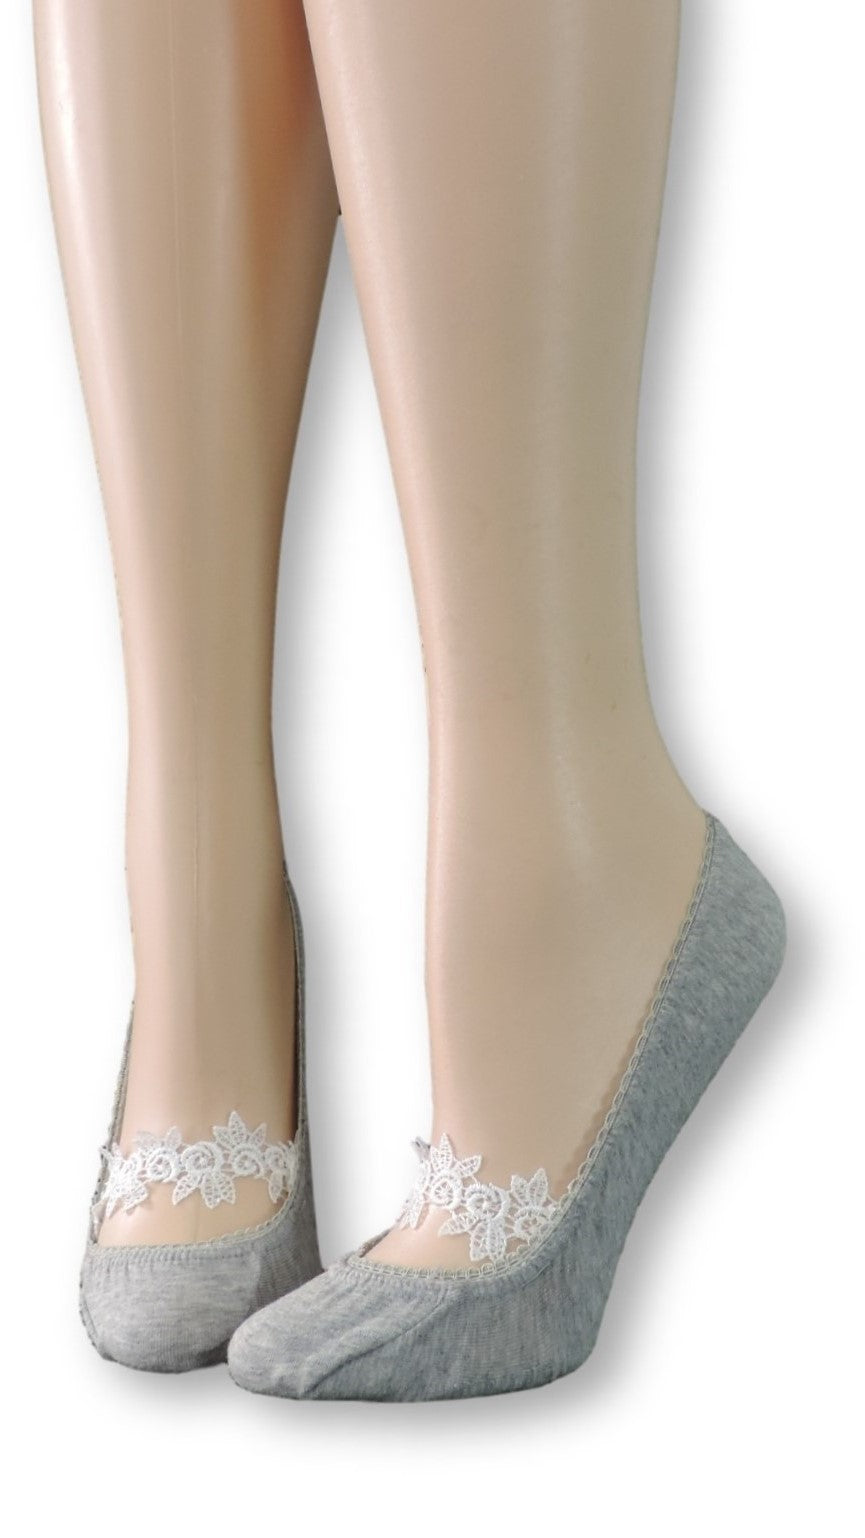 Gray Ankle Socks with White Floral Lace - Global Trendz Fashion®